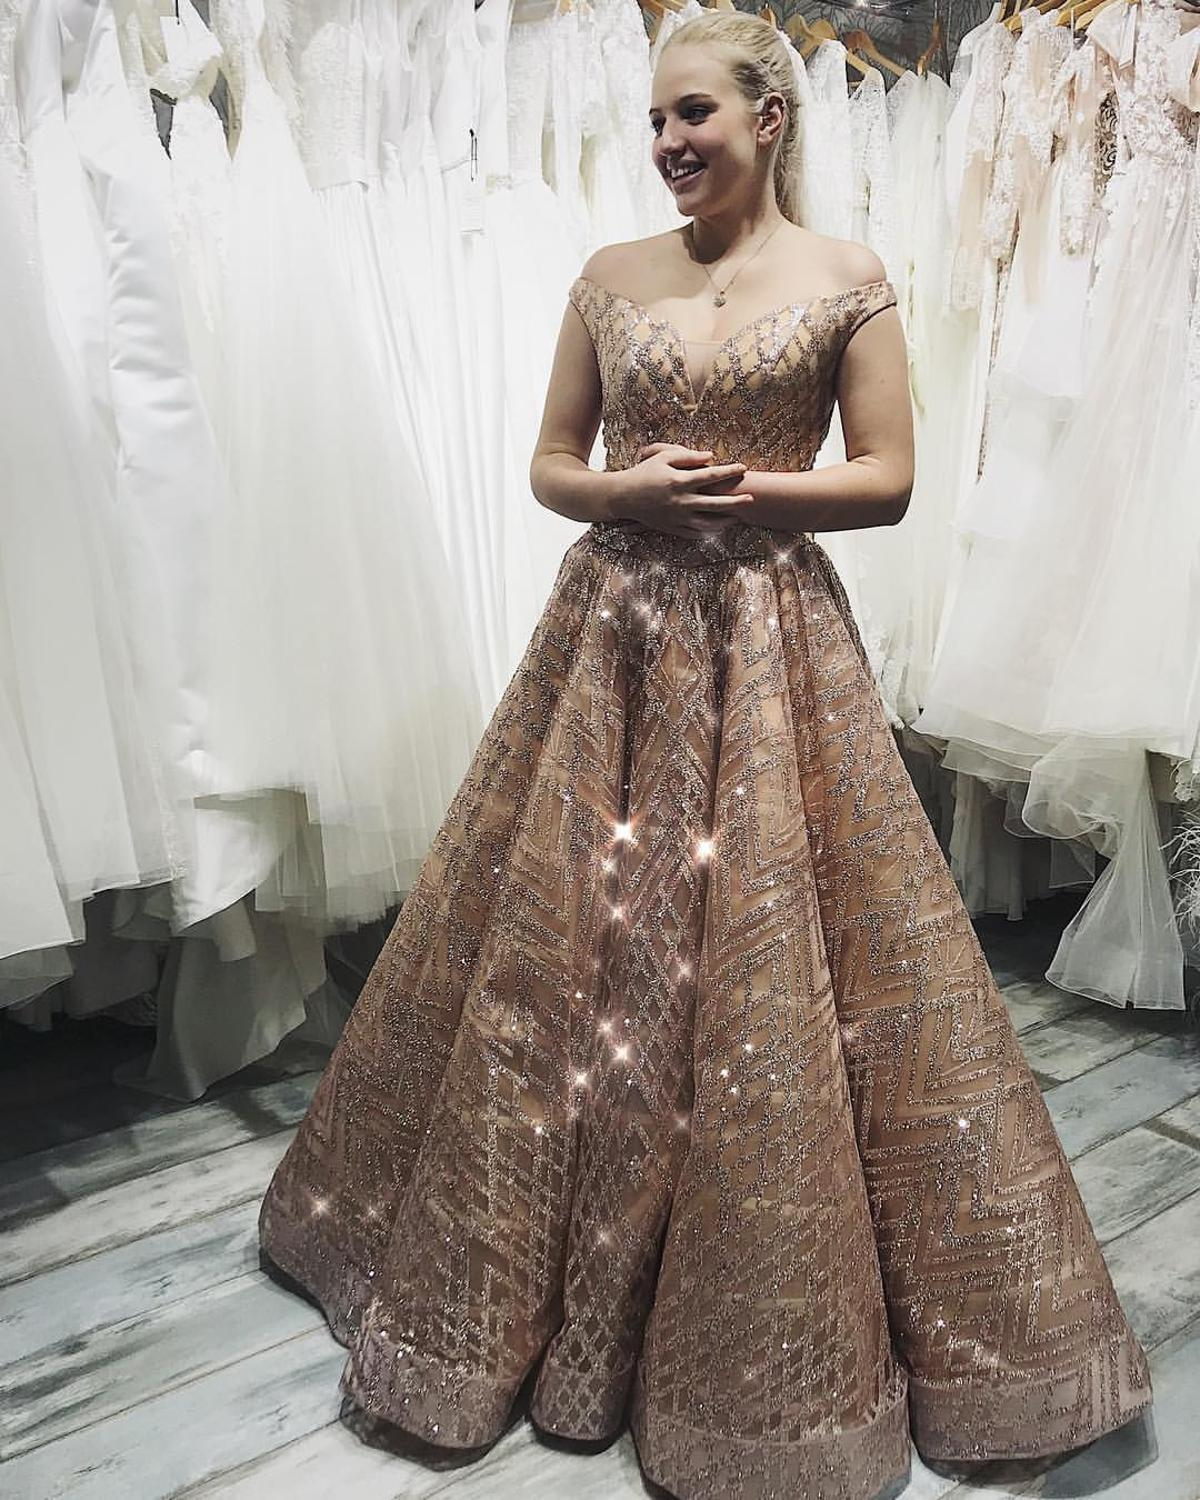 Vestidos De Gala Luxury Prom Dress 2020 Ball Gown Tulle Sequins Robe De Soiree Dubai Arabia Evening Gown Prom Dresses Aliexpress